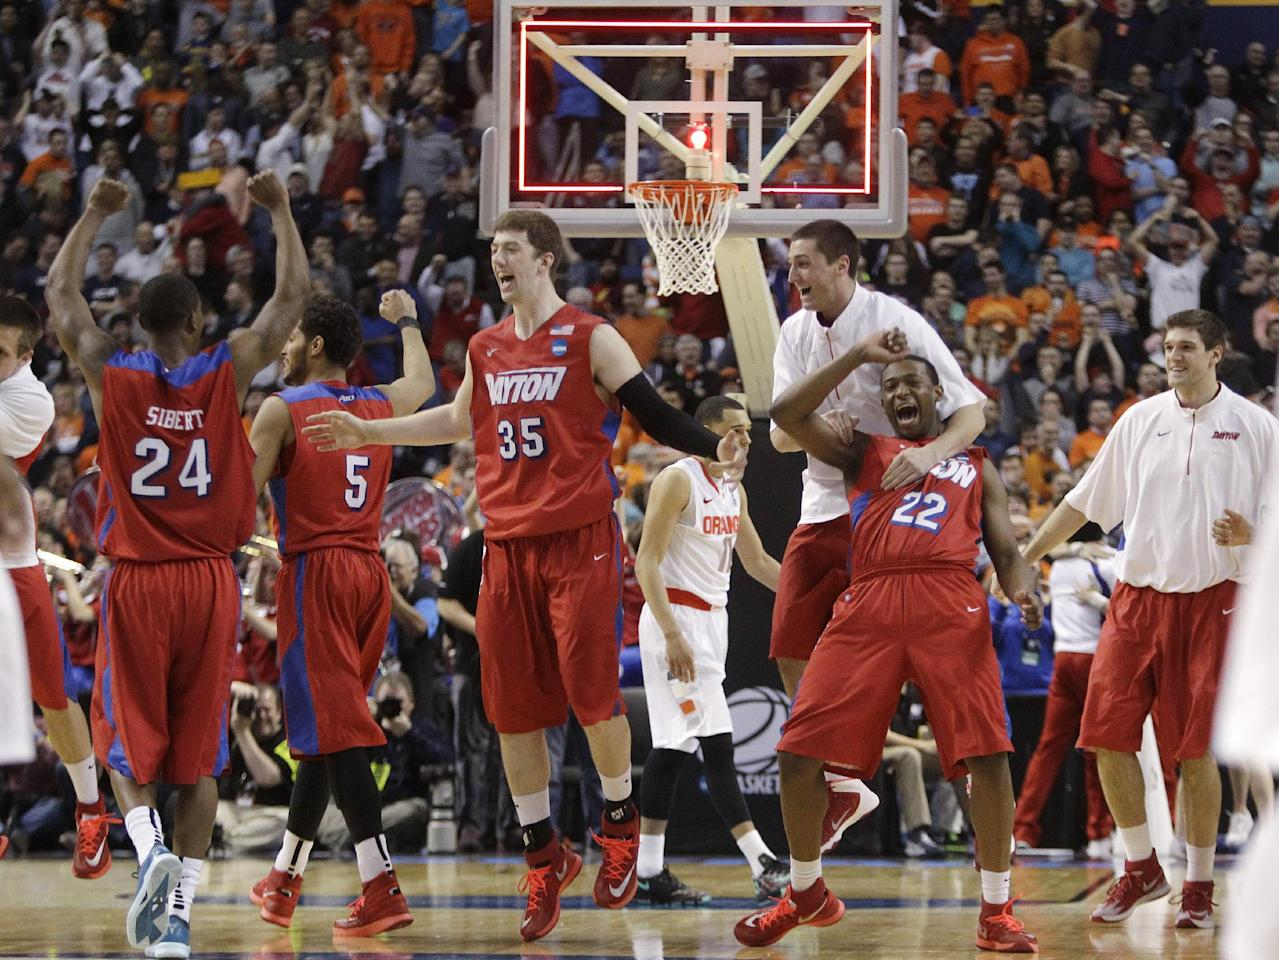 Dayton's Jordan Sibert (24), Matt Kavanaugh (35) and Kendall Pollard (22) celebrate after a third-round game against Syracuse in the NCAA men's college basketball tournament in Buffalo, N.Y., Saturday, March 22, 2014. Dayton won 55-53. (AP Photo/Bill Wippert)